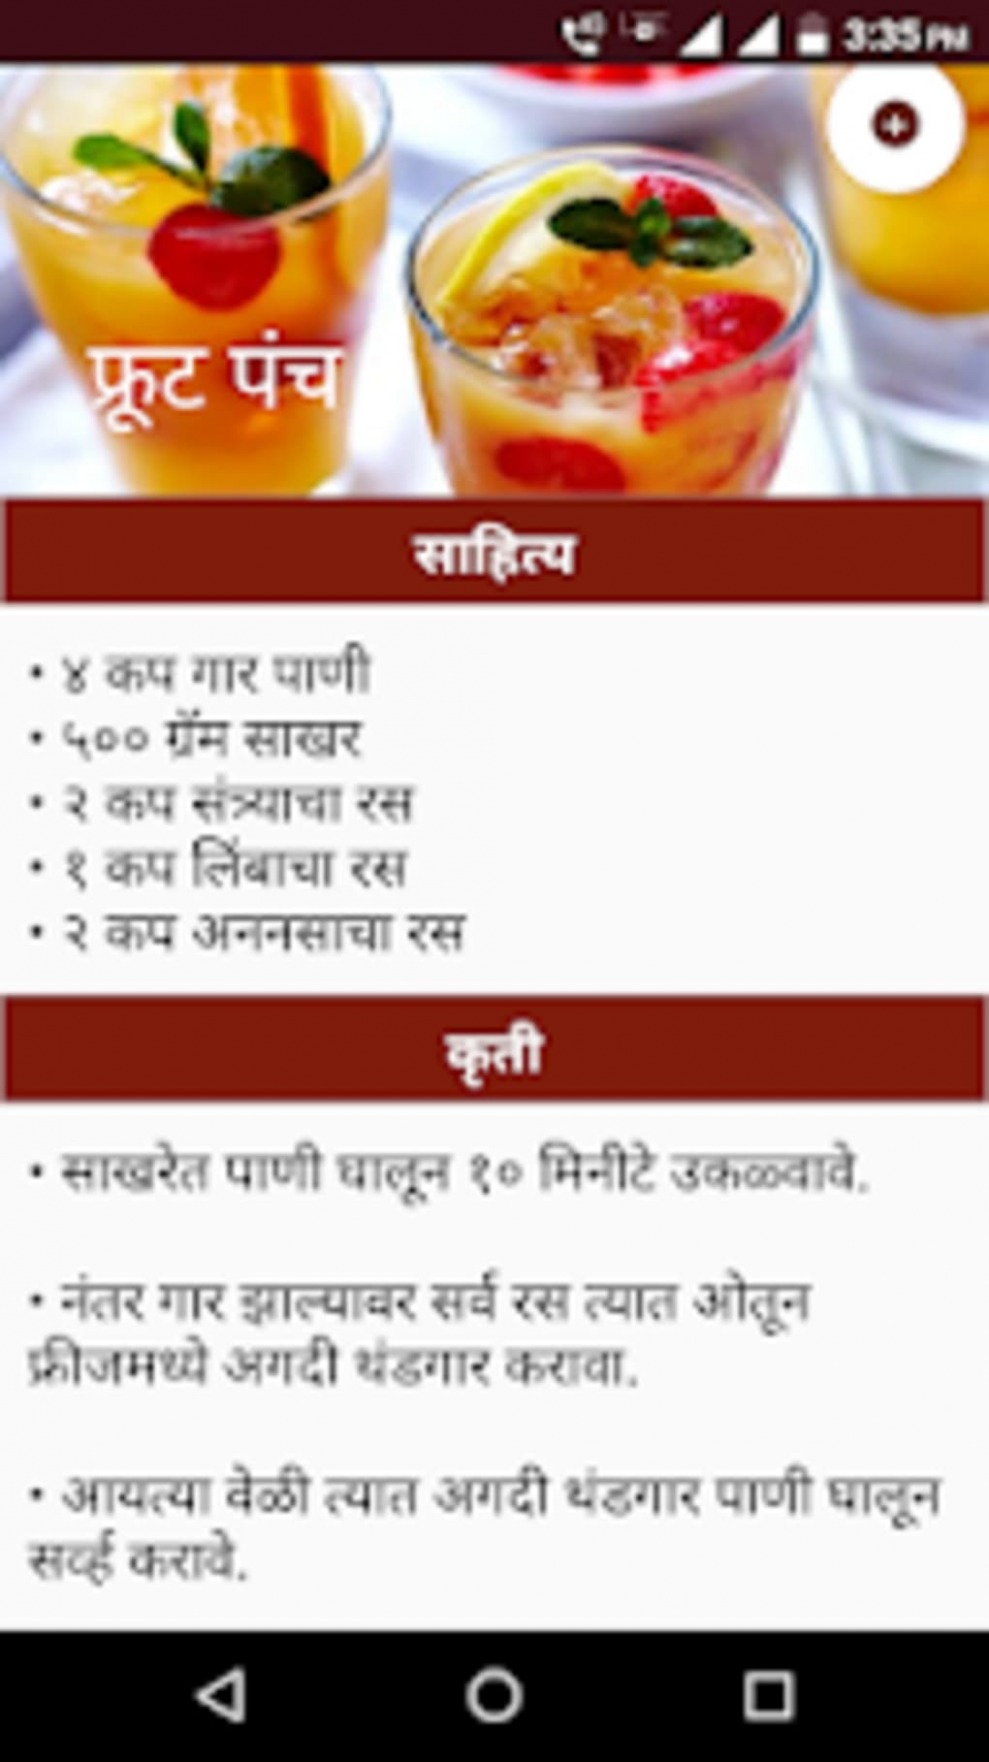 Marathi Breakfast Recipes APK for Android - Download - Breakfast Recipes Marathi